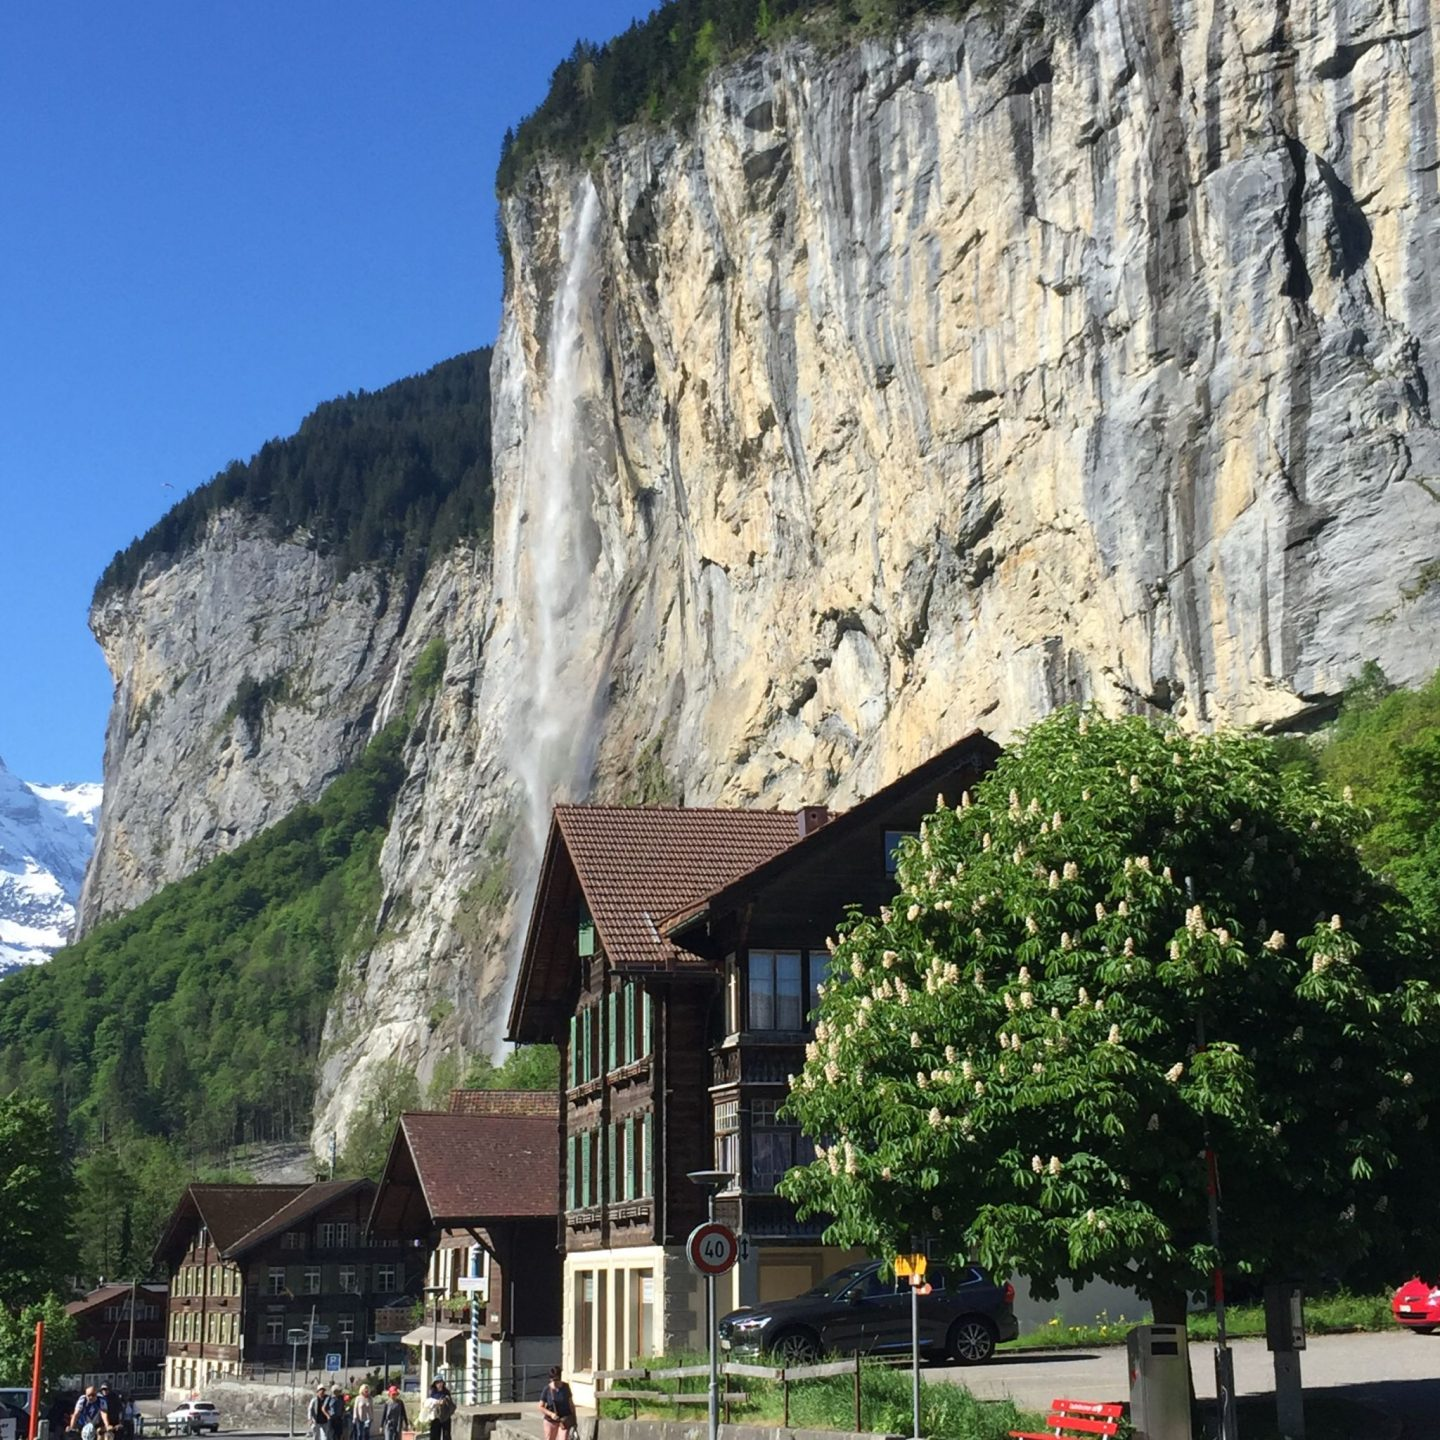 Waterfall in Lauterbrunnen